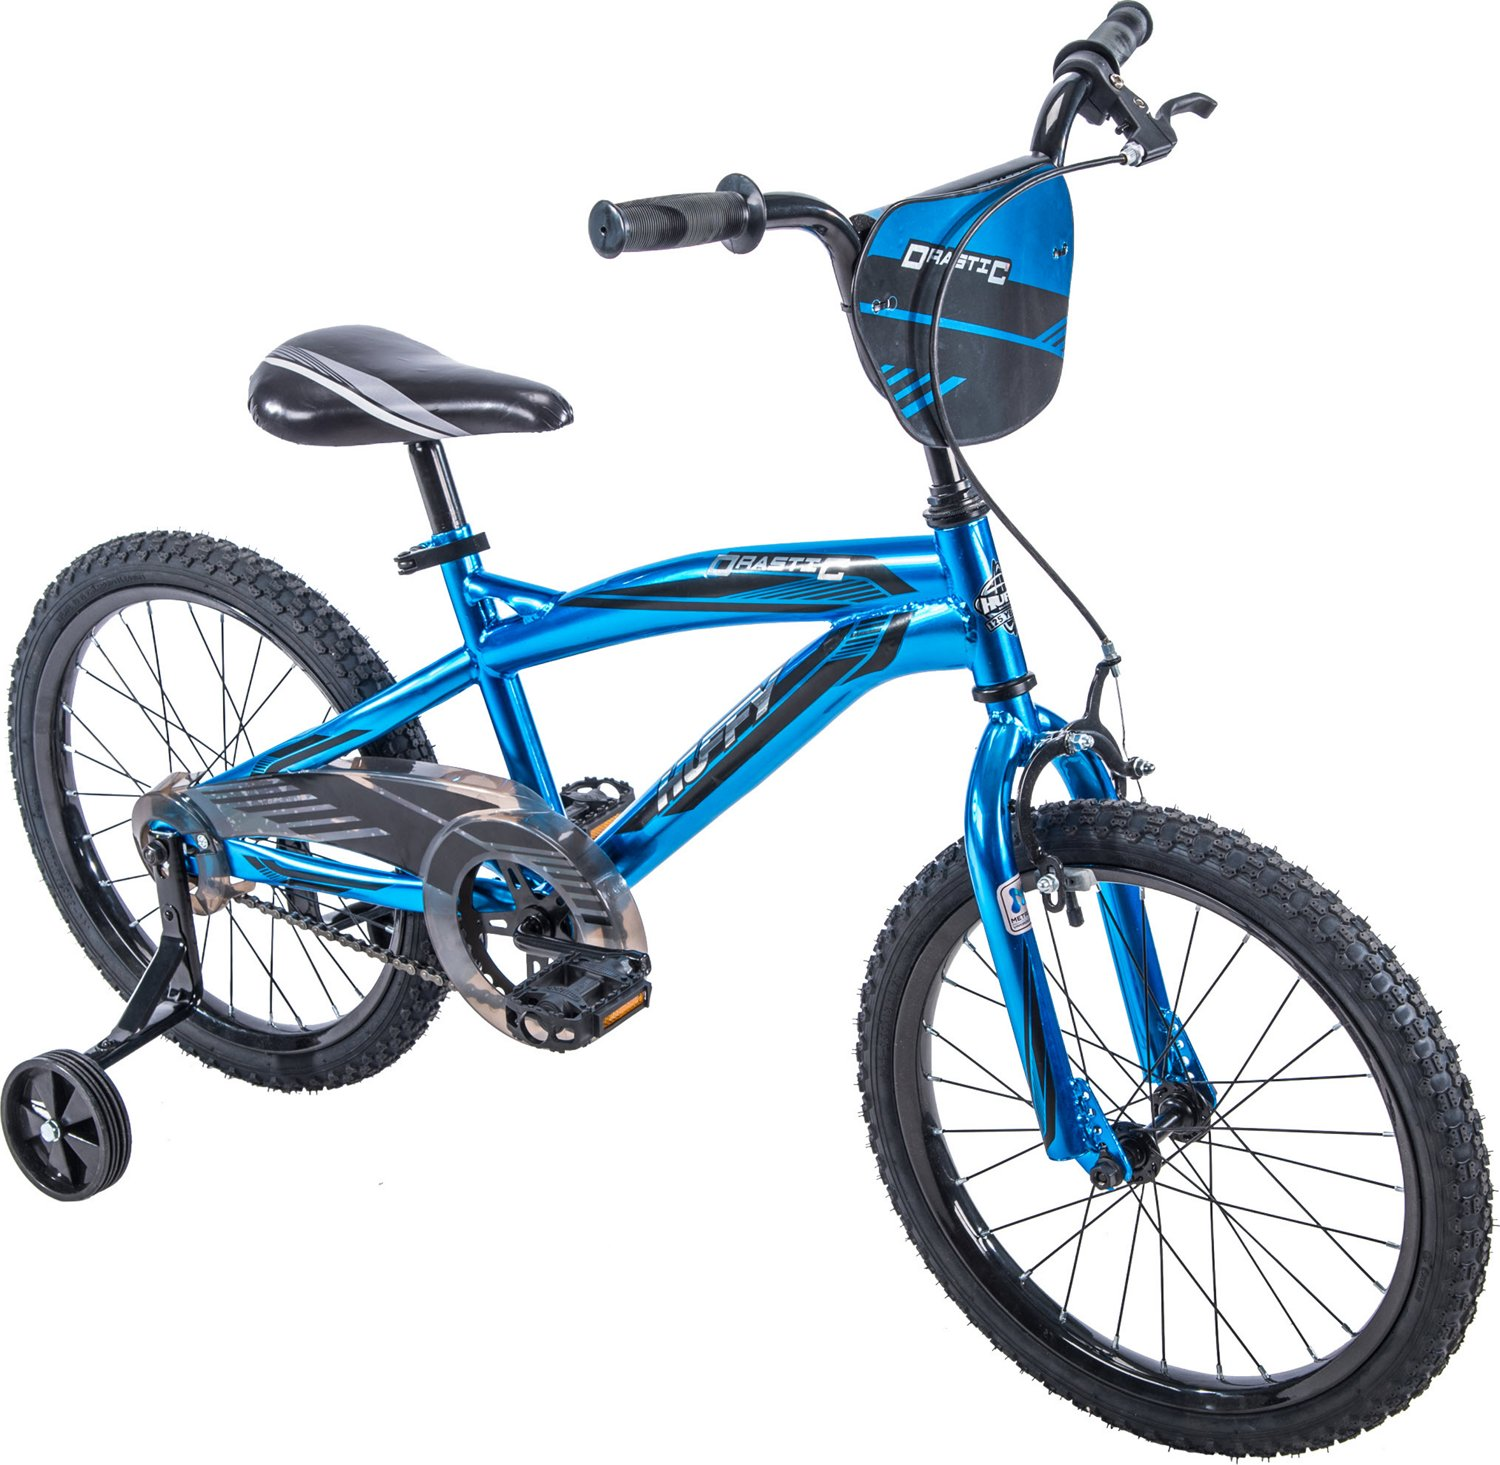 6b0c025de27 Display product reviews for Huffy Boys' Metaloid Drastic 18 in Bicycle